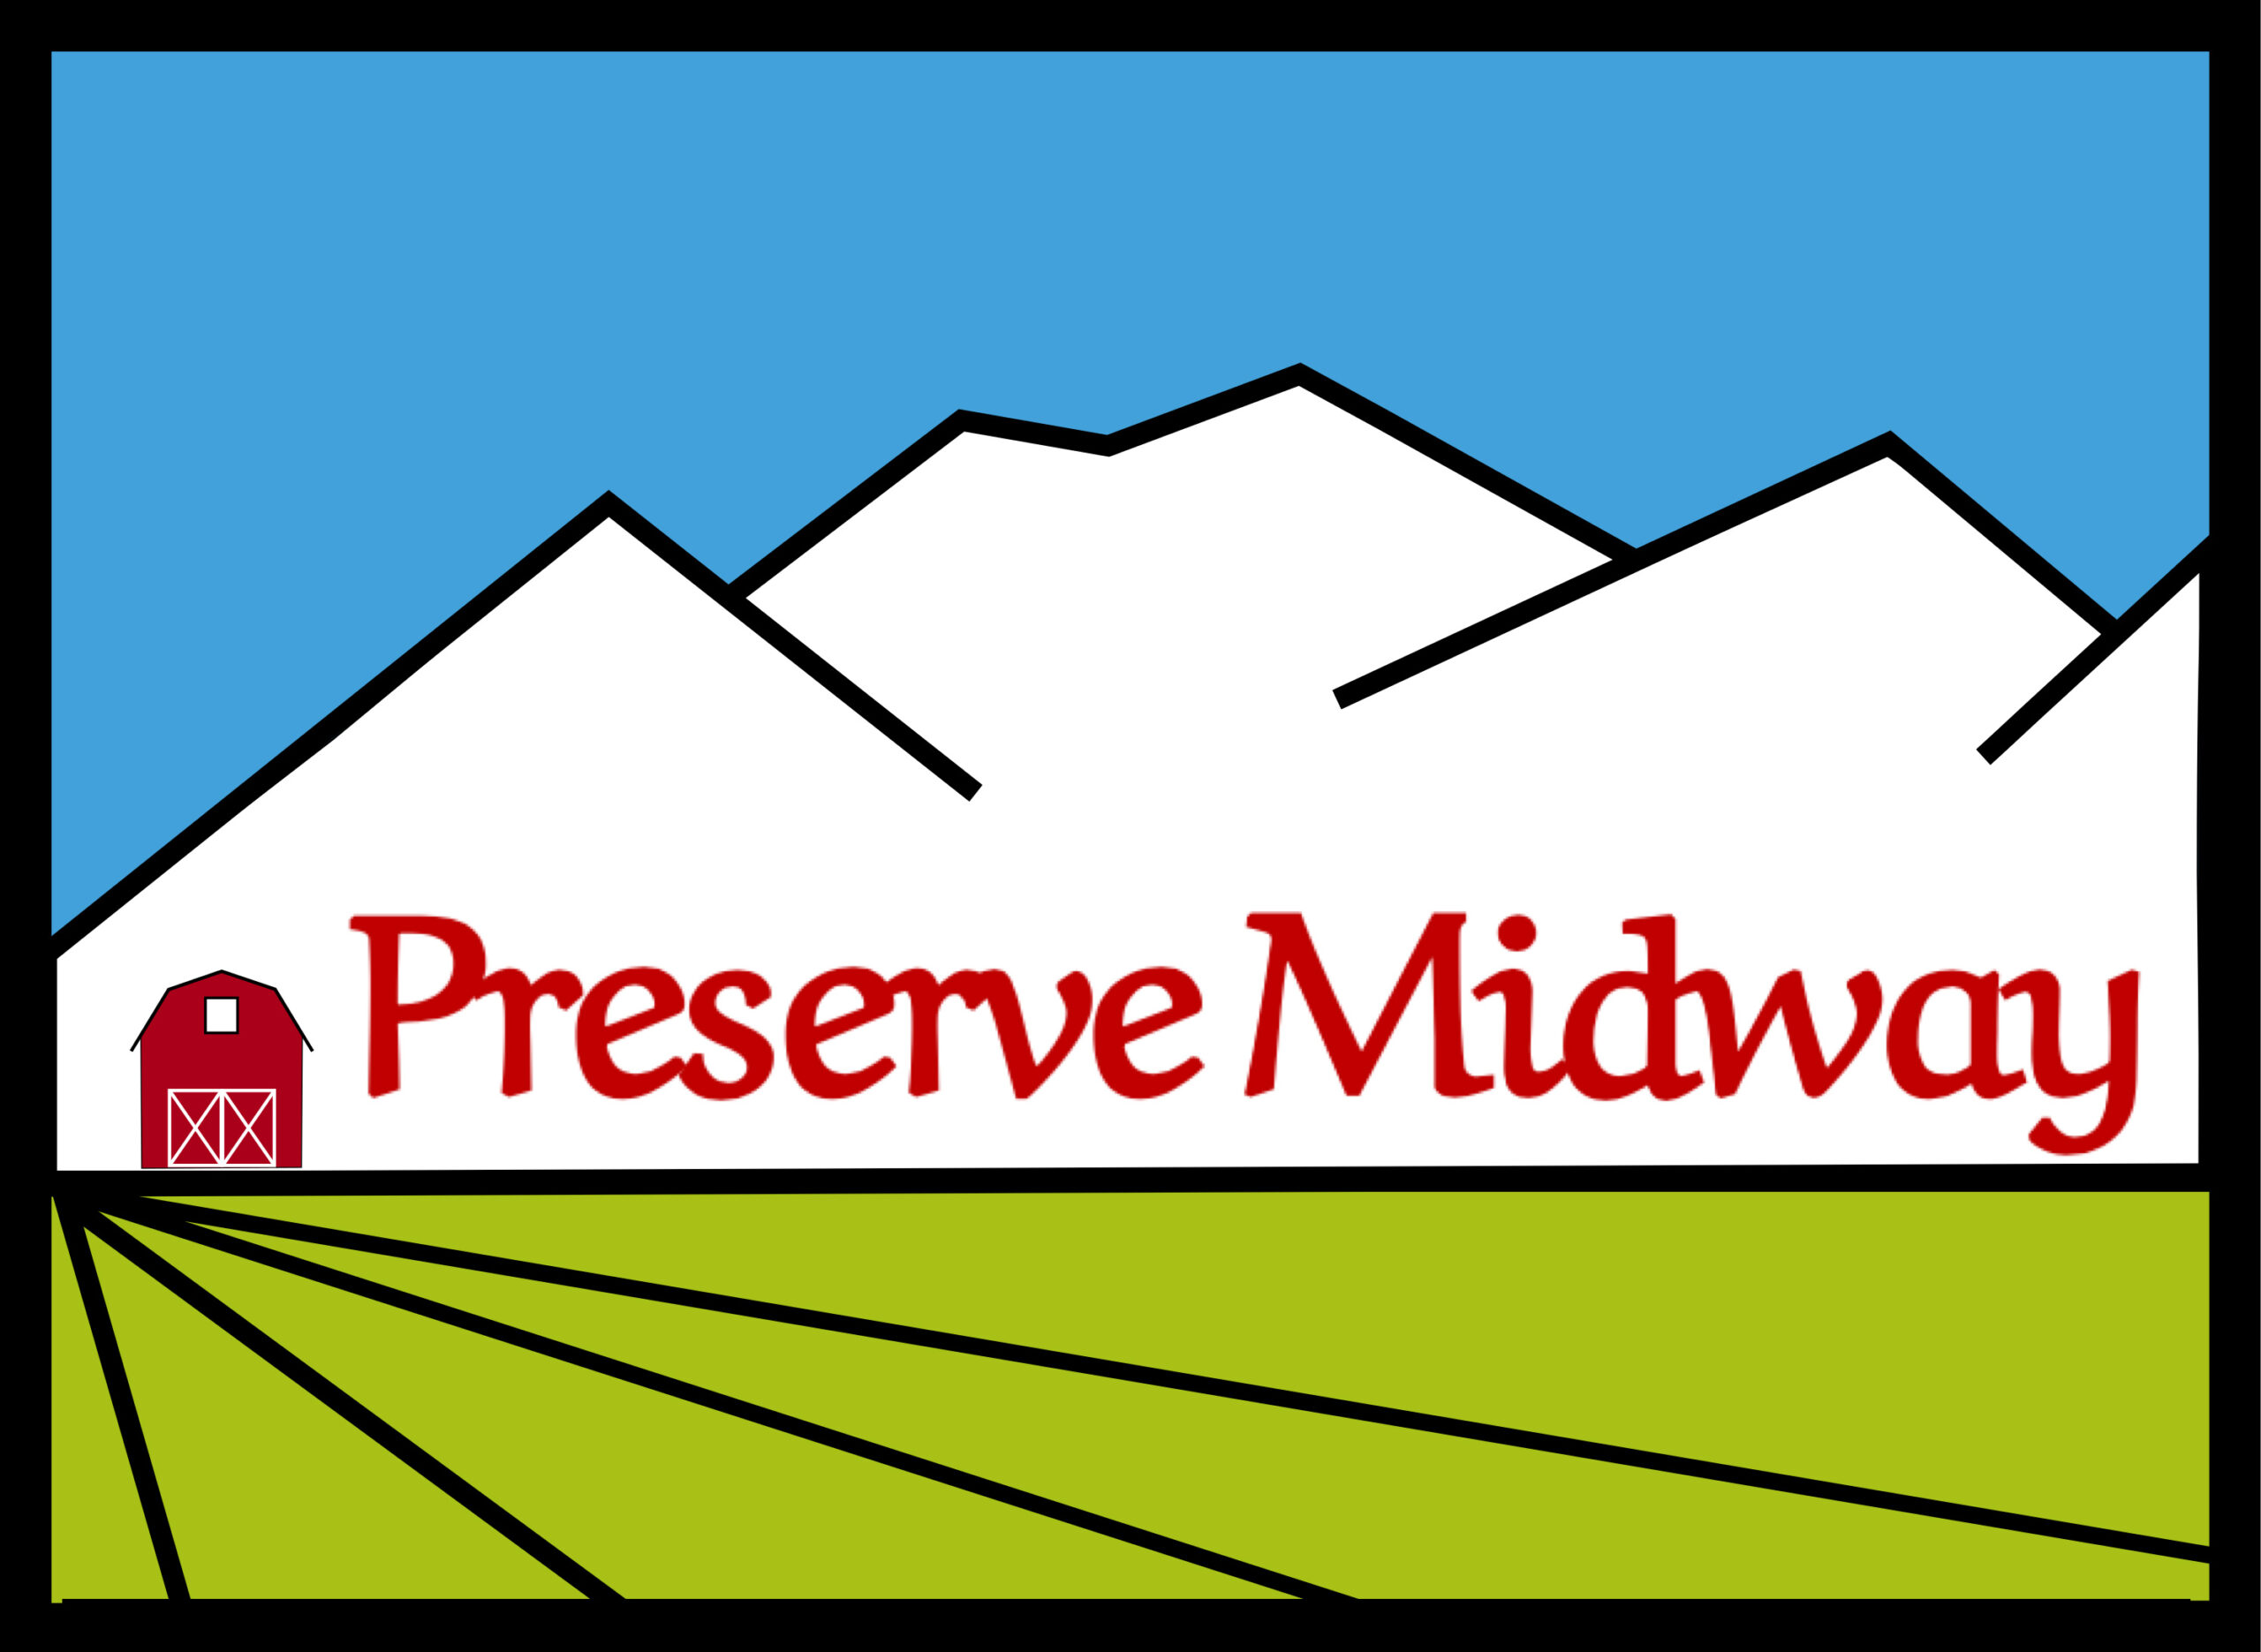 Preserve Midway